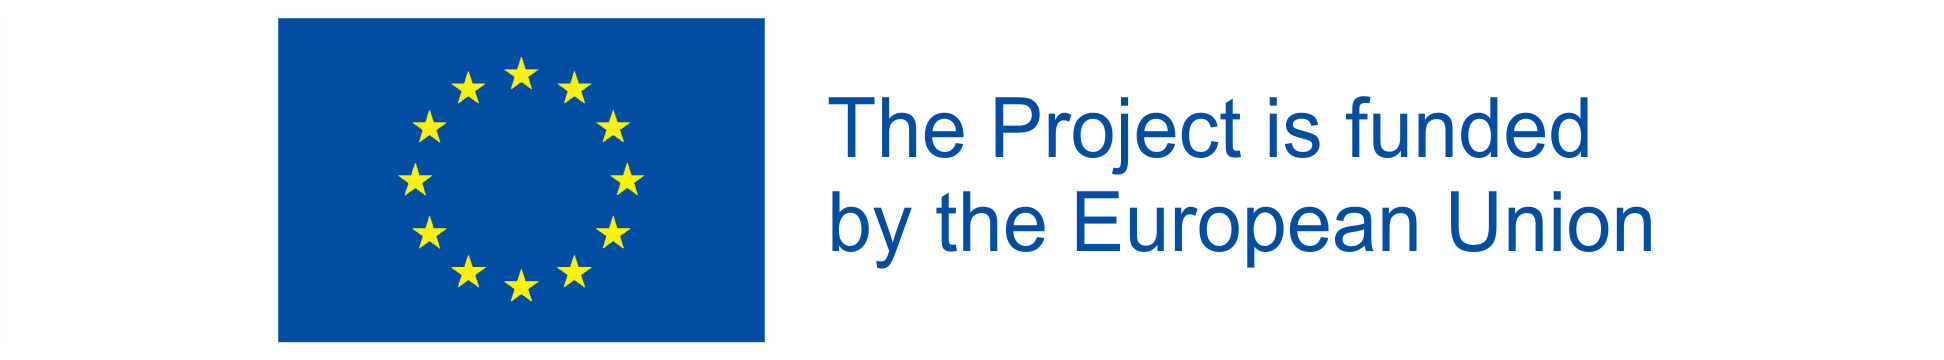 EU-logo_-_Canvas2.png